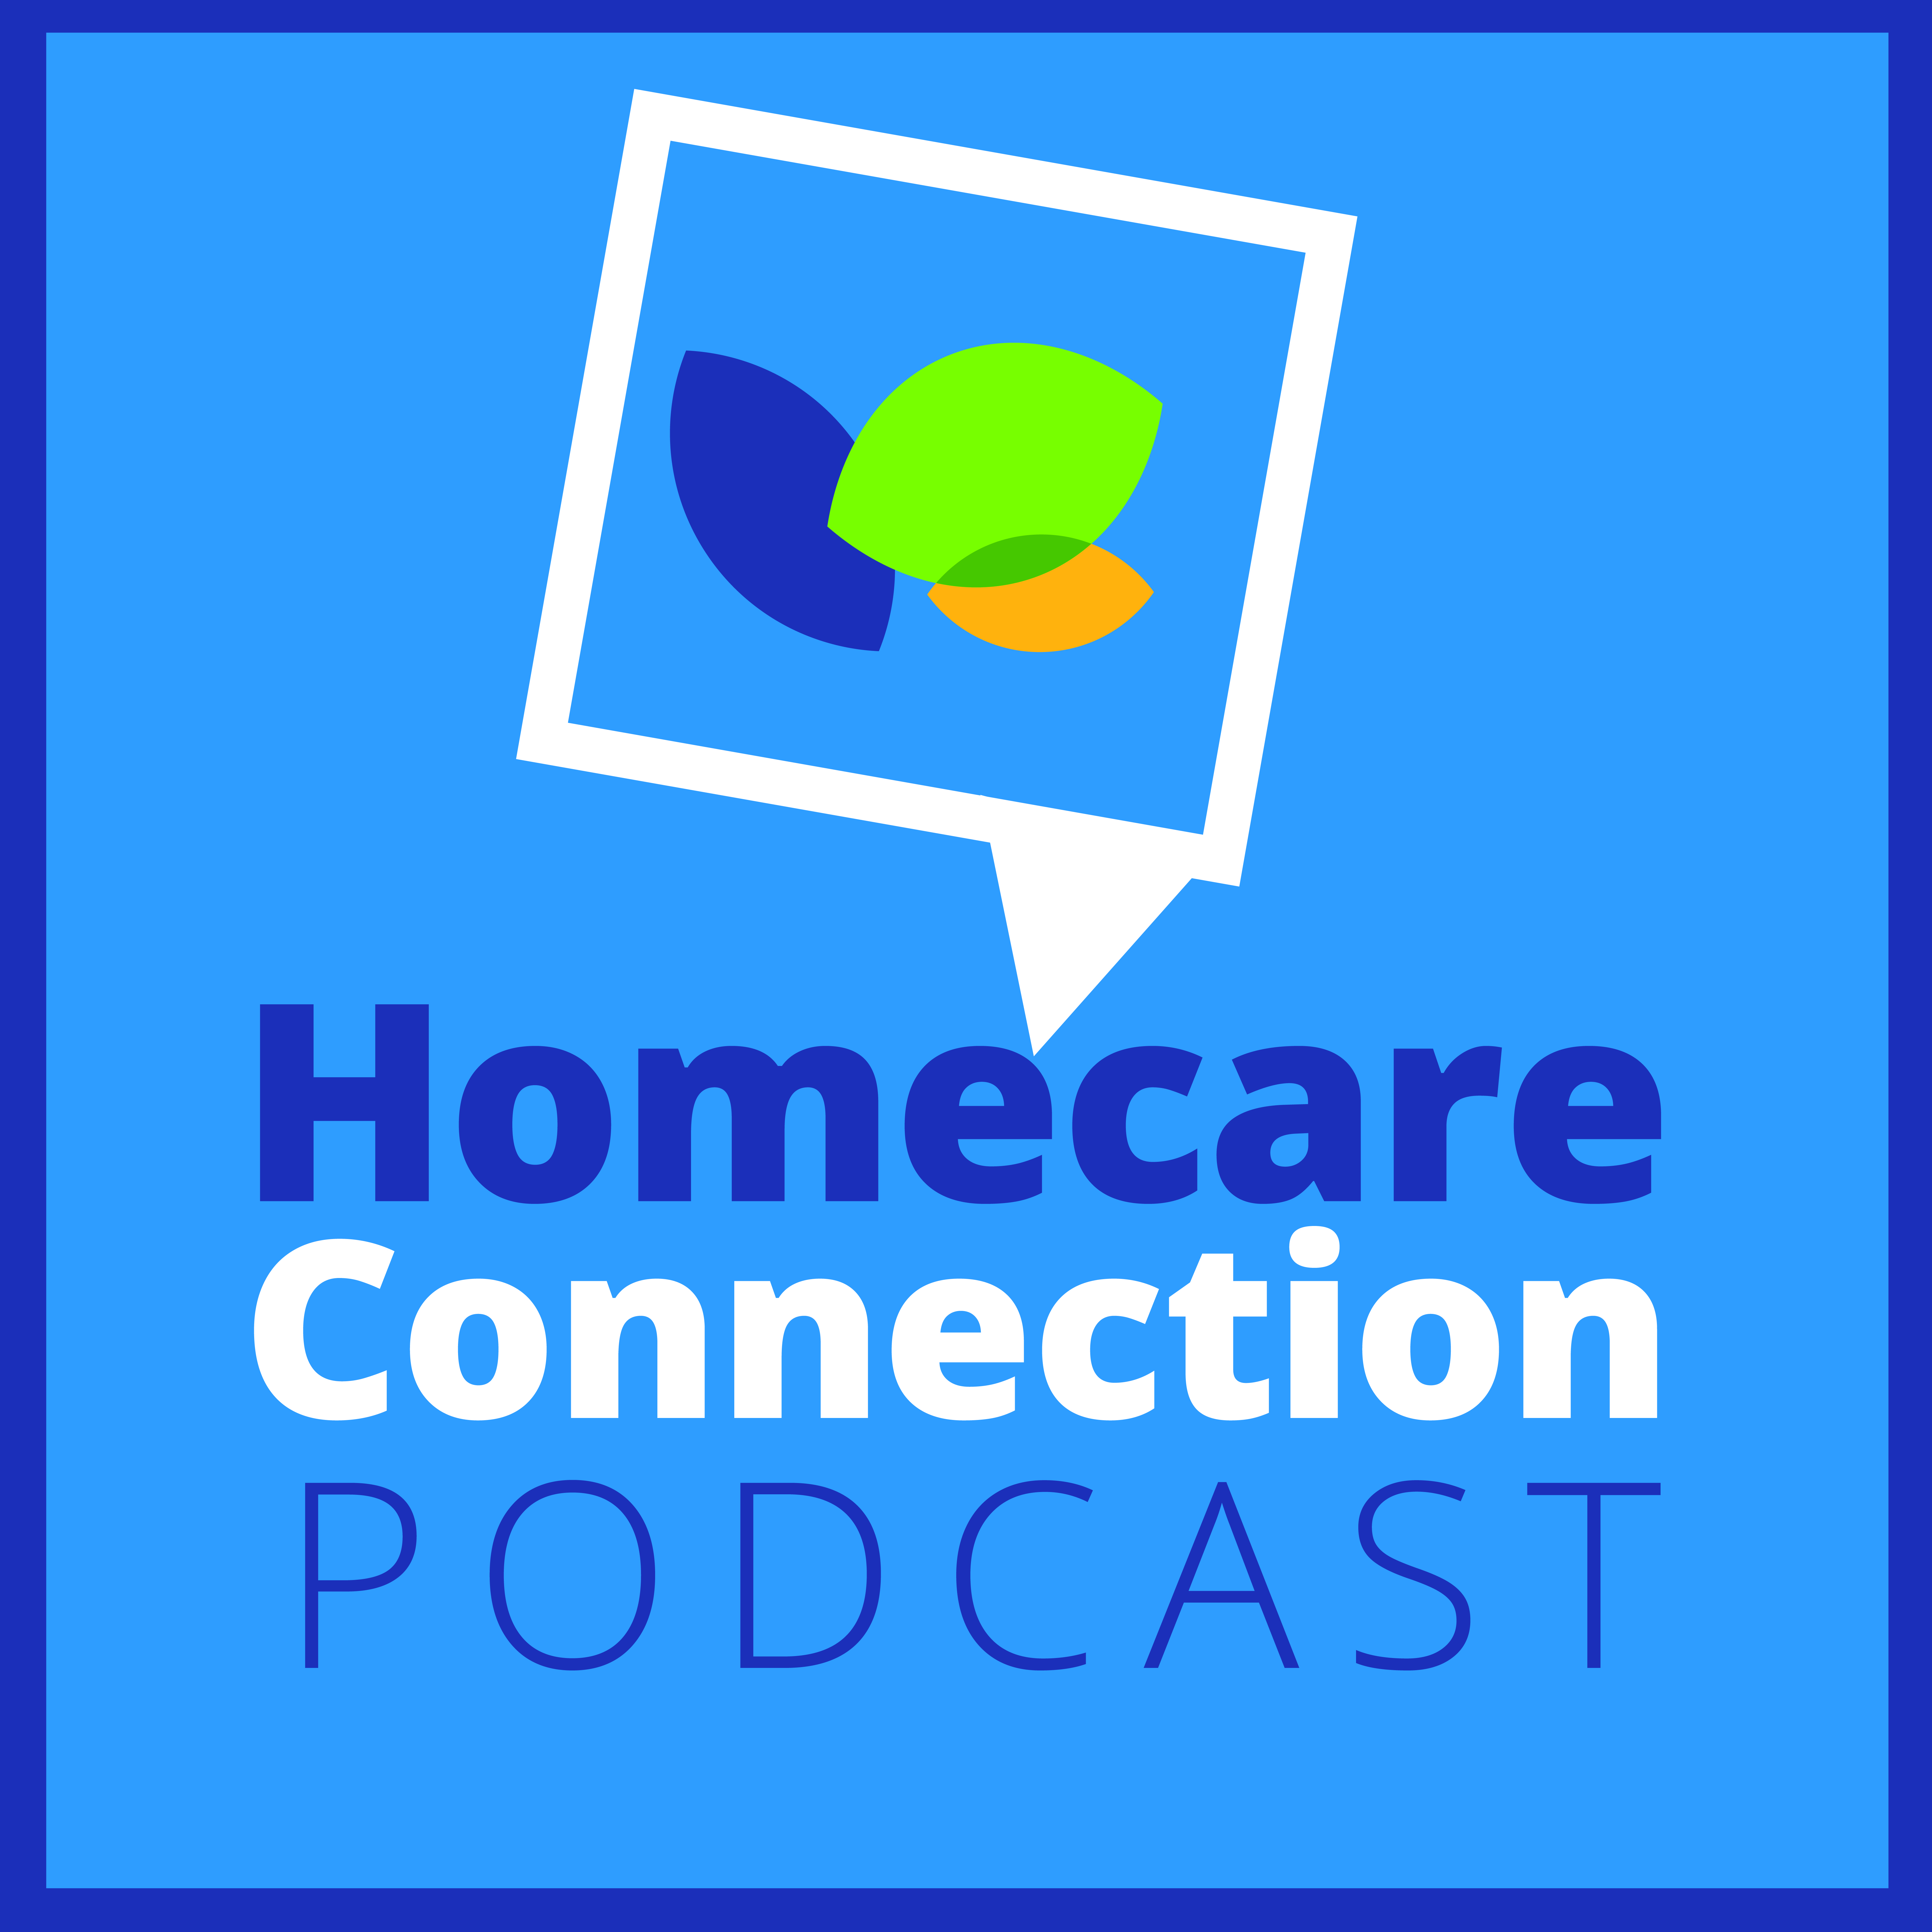 homecare connection podcast